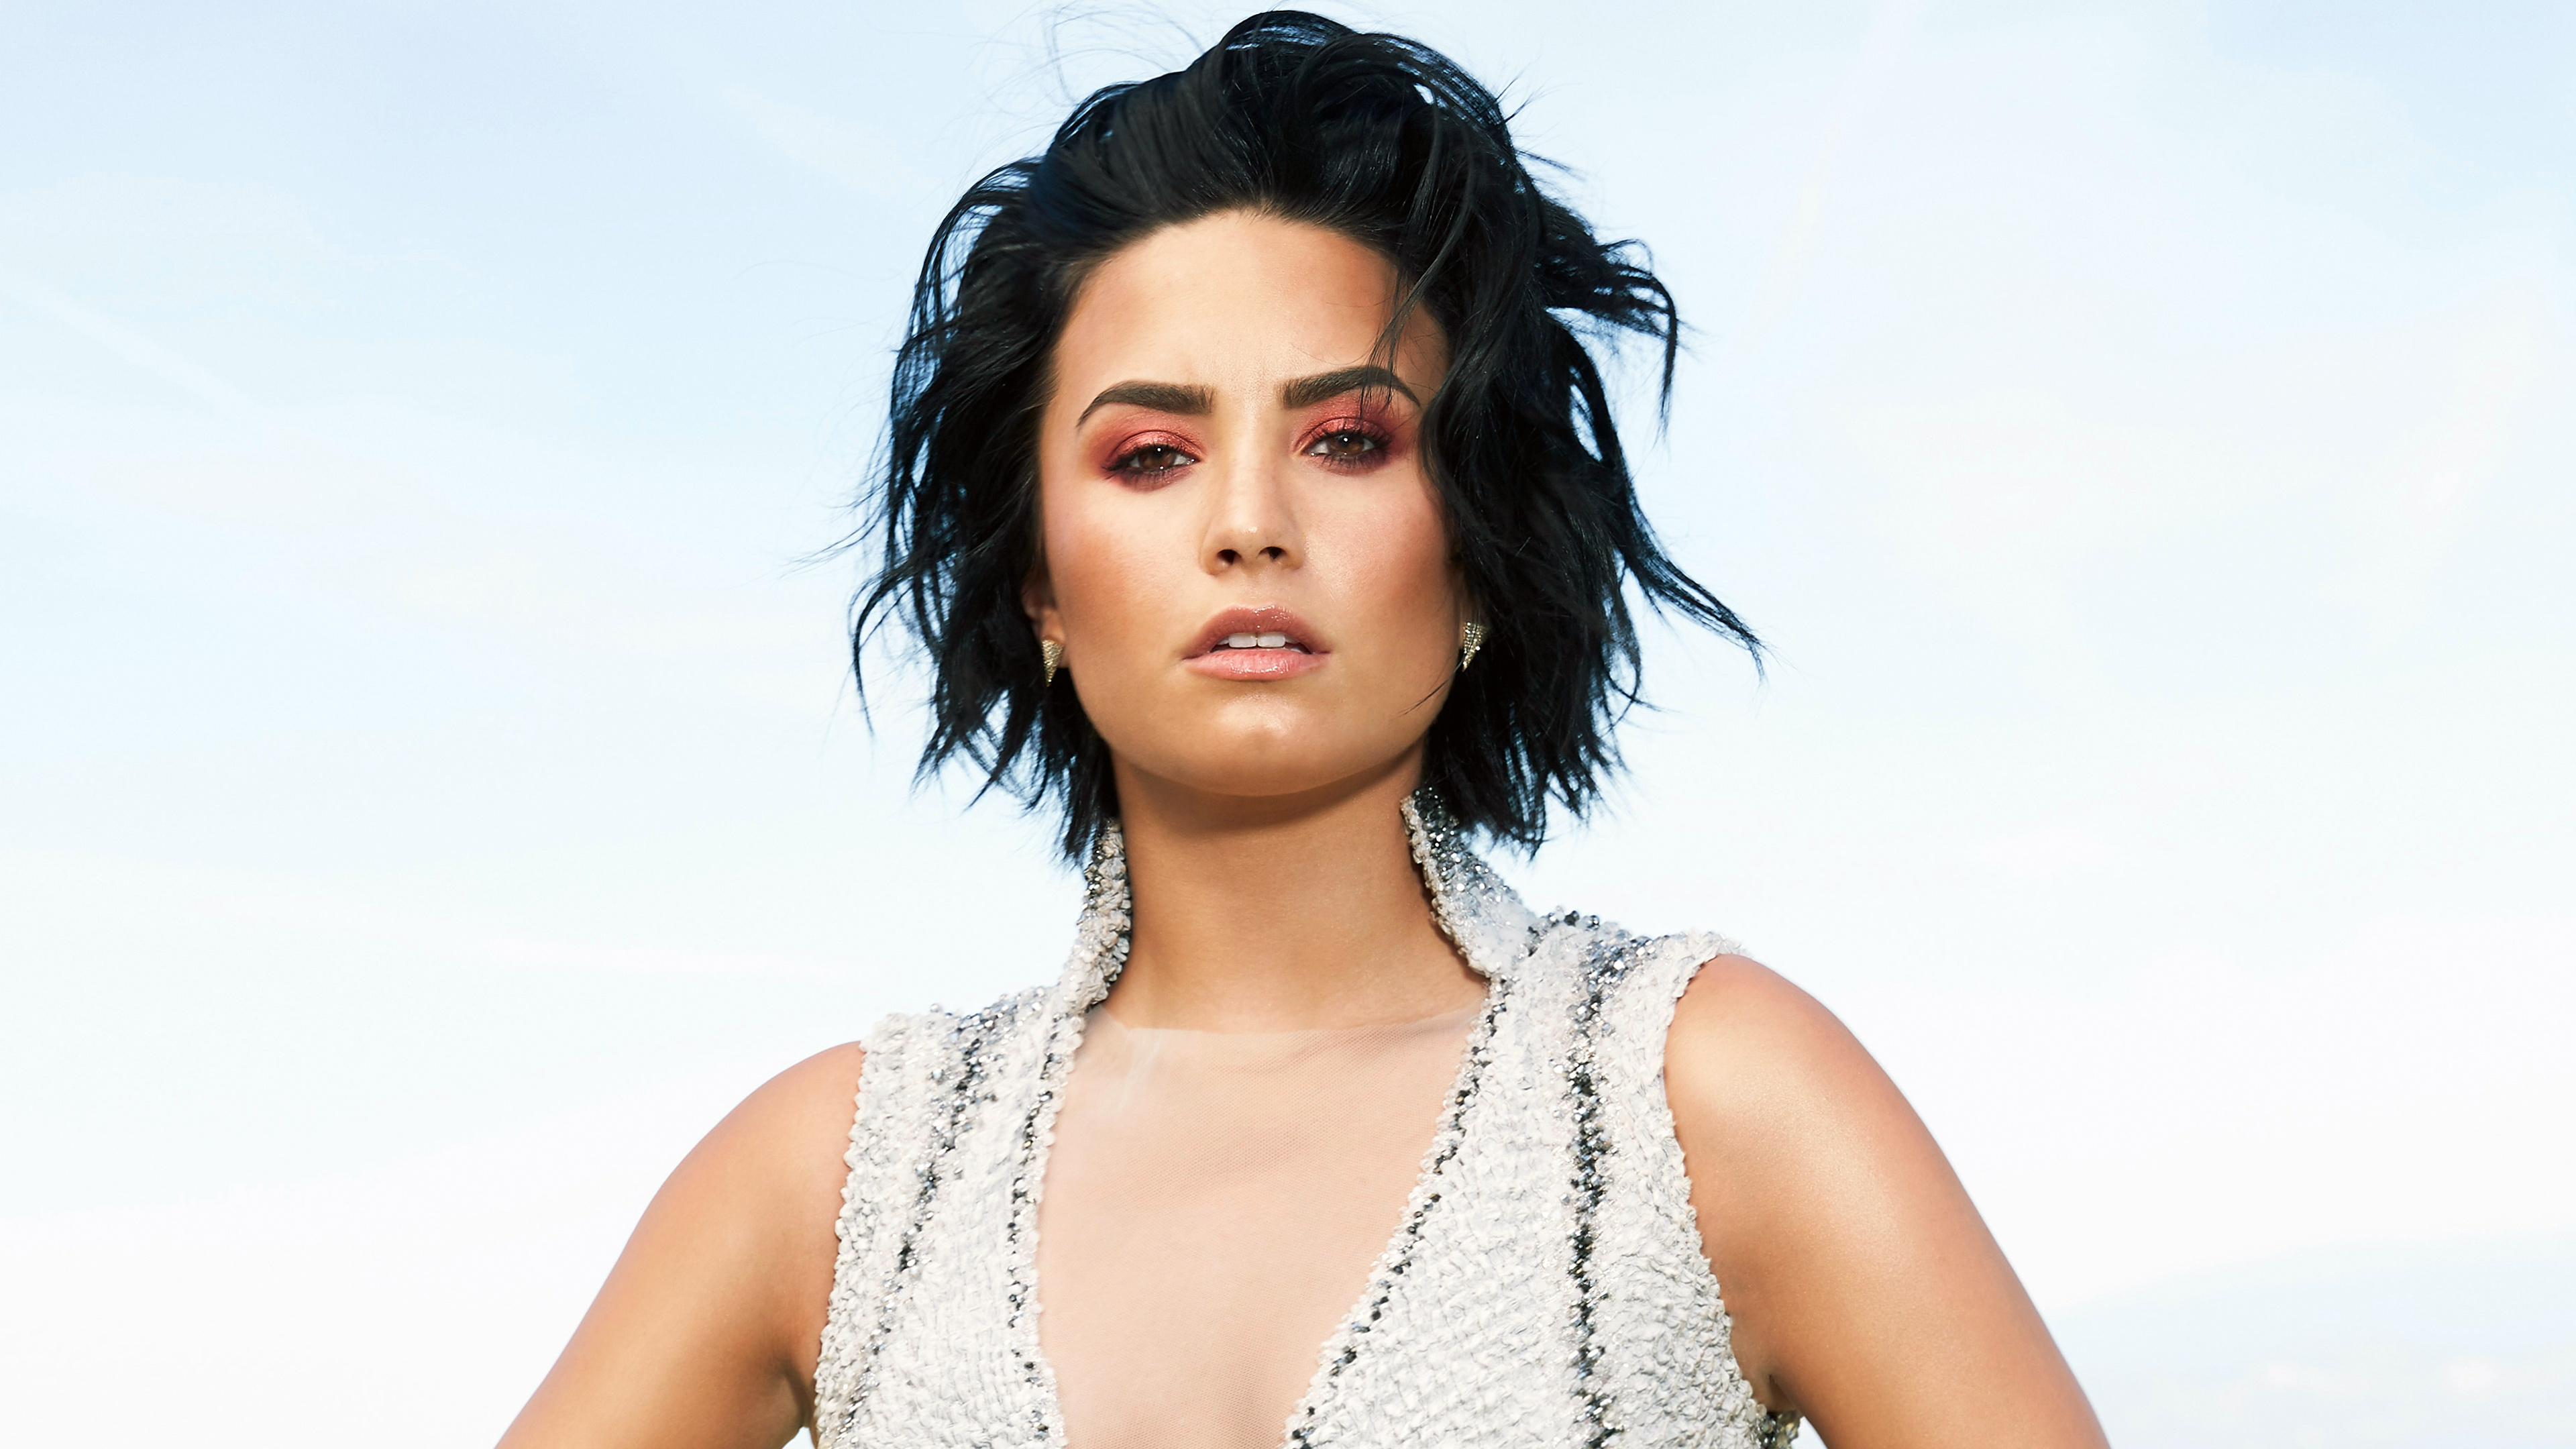 lovato wallpapers, photos and desktop backgrounds up to 8k